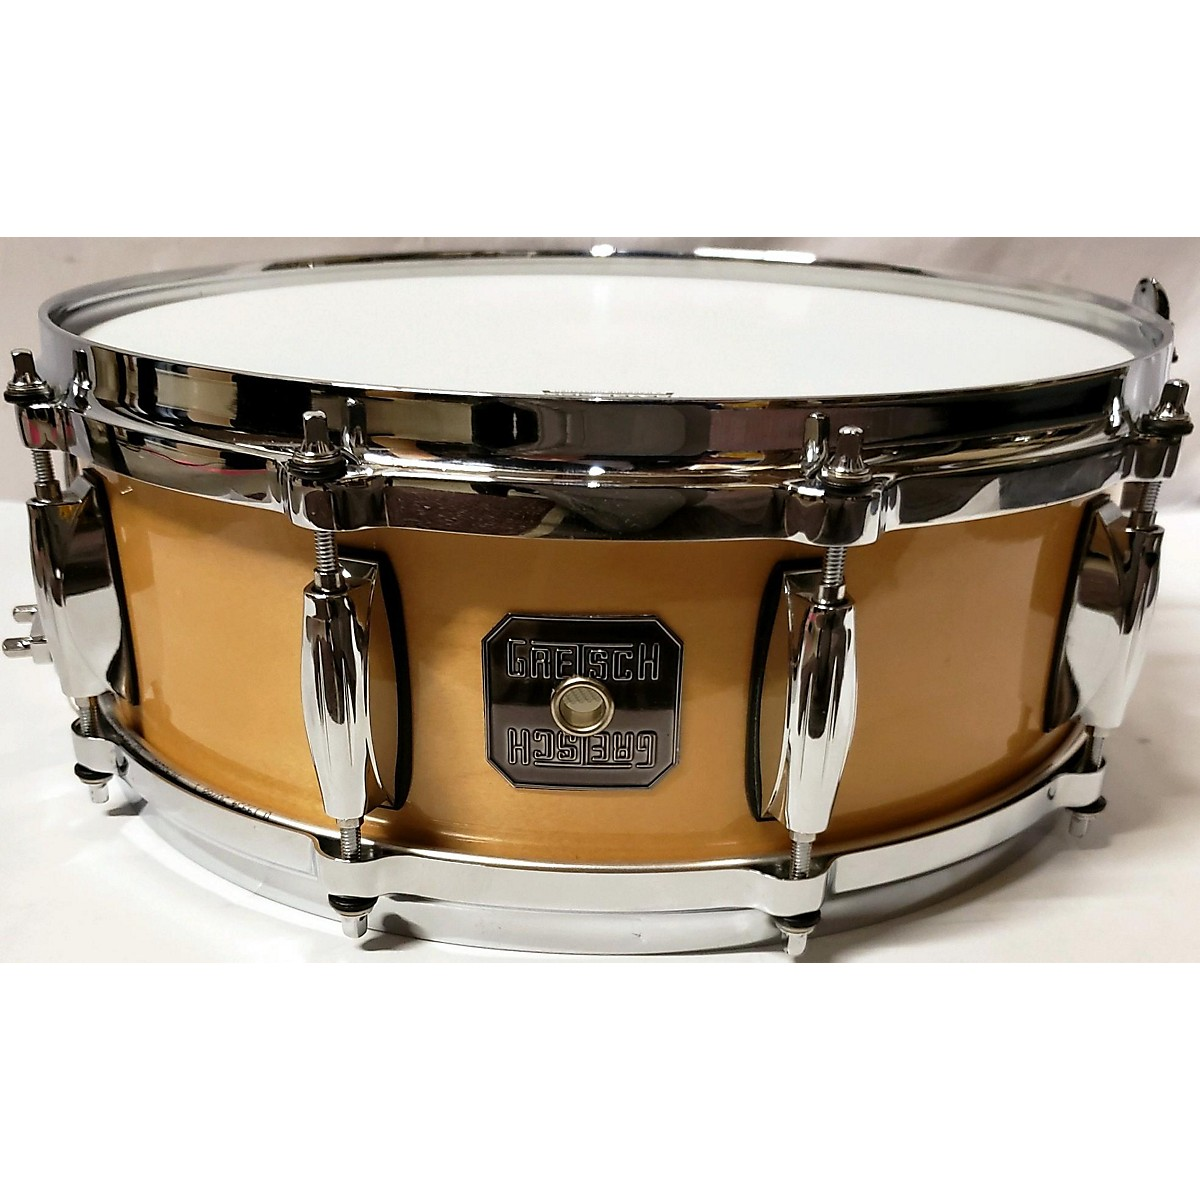 Gretsch Drums 5X14 Full Range Snare Drum